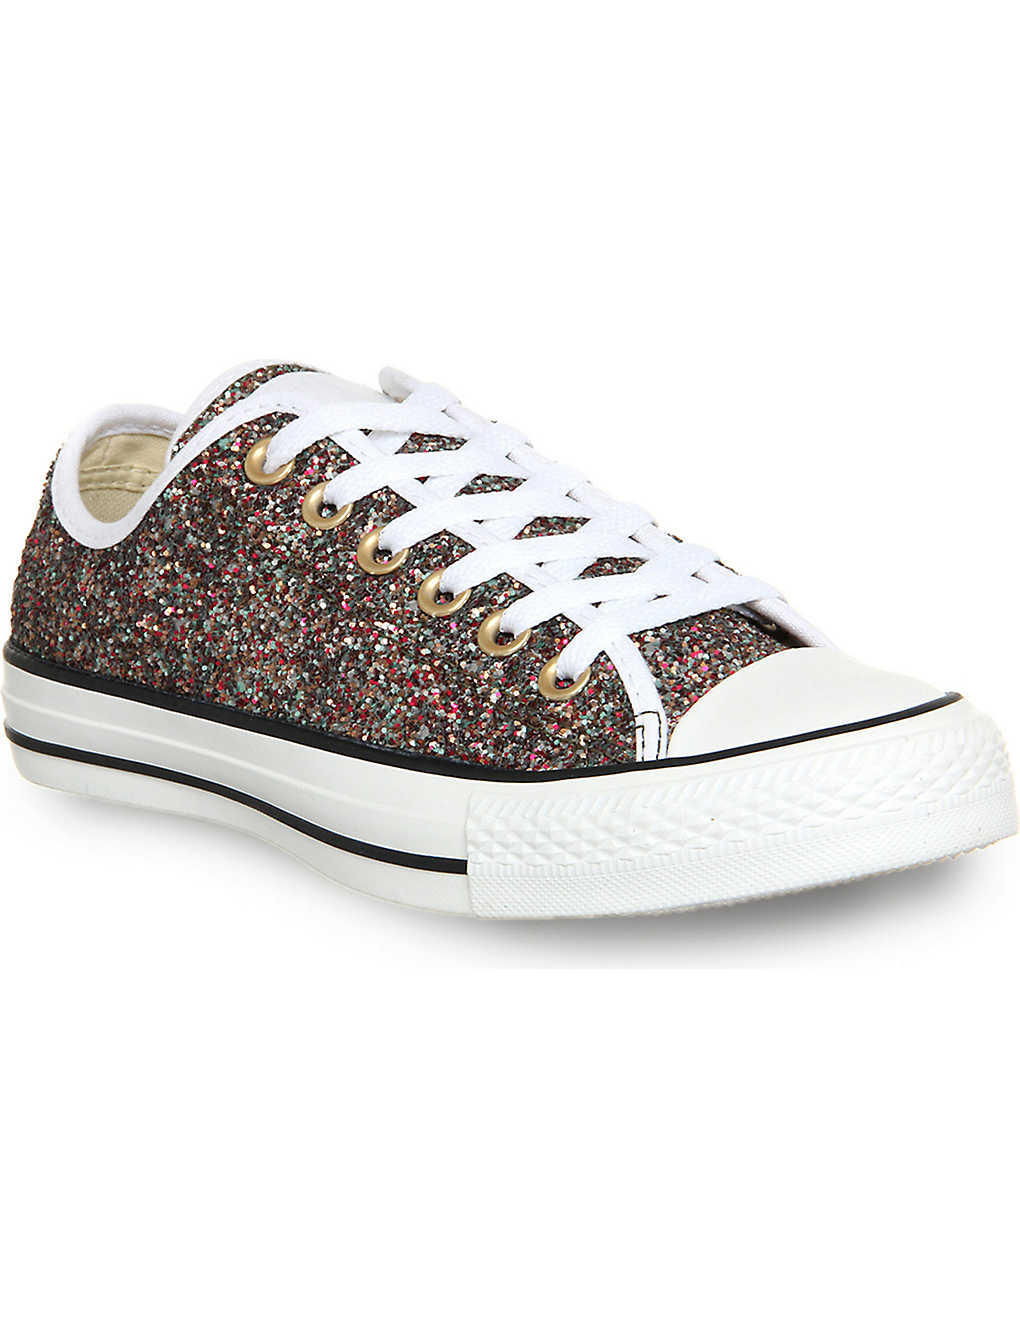 ec57b9881c837 CONVERSE - All star low-top sequin trainers | Selfridges.com